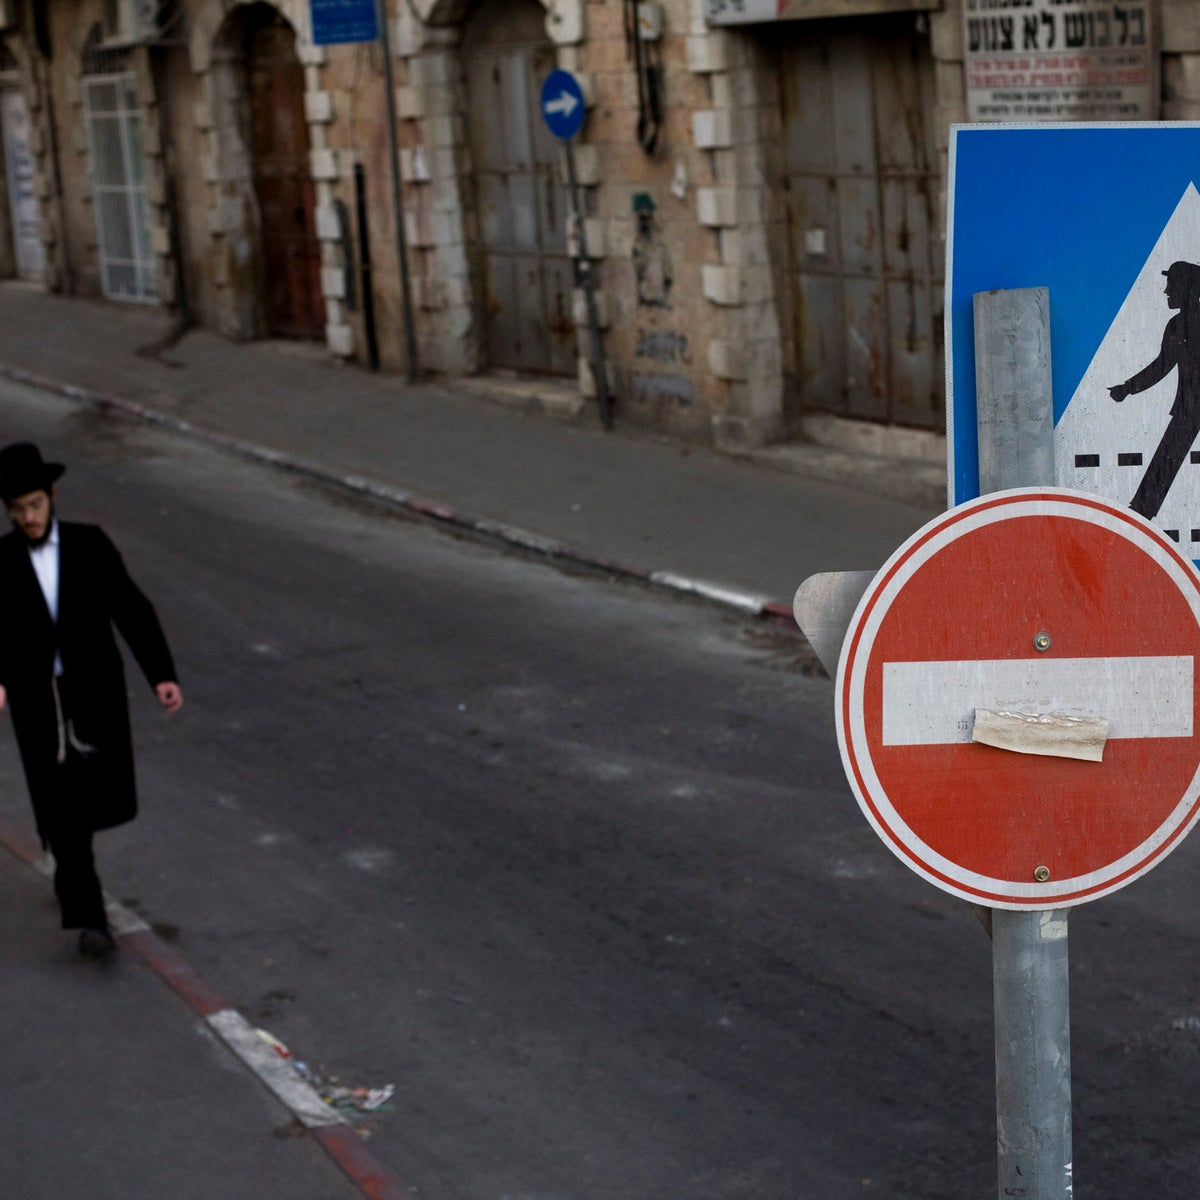 An archive photo of Mea Shearim, an ultra-Orthodox neighborhood in Jerusalem.